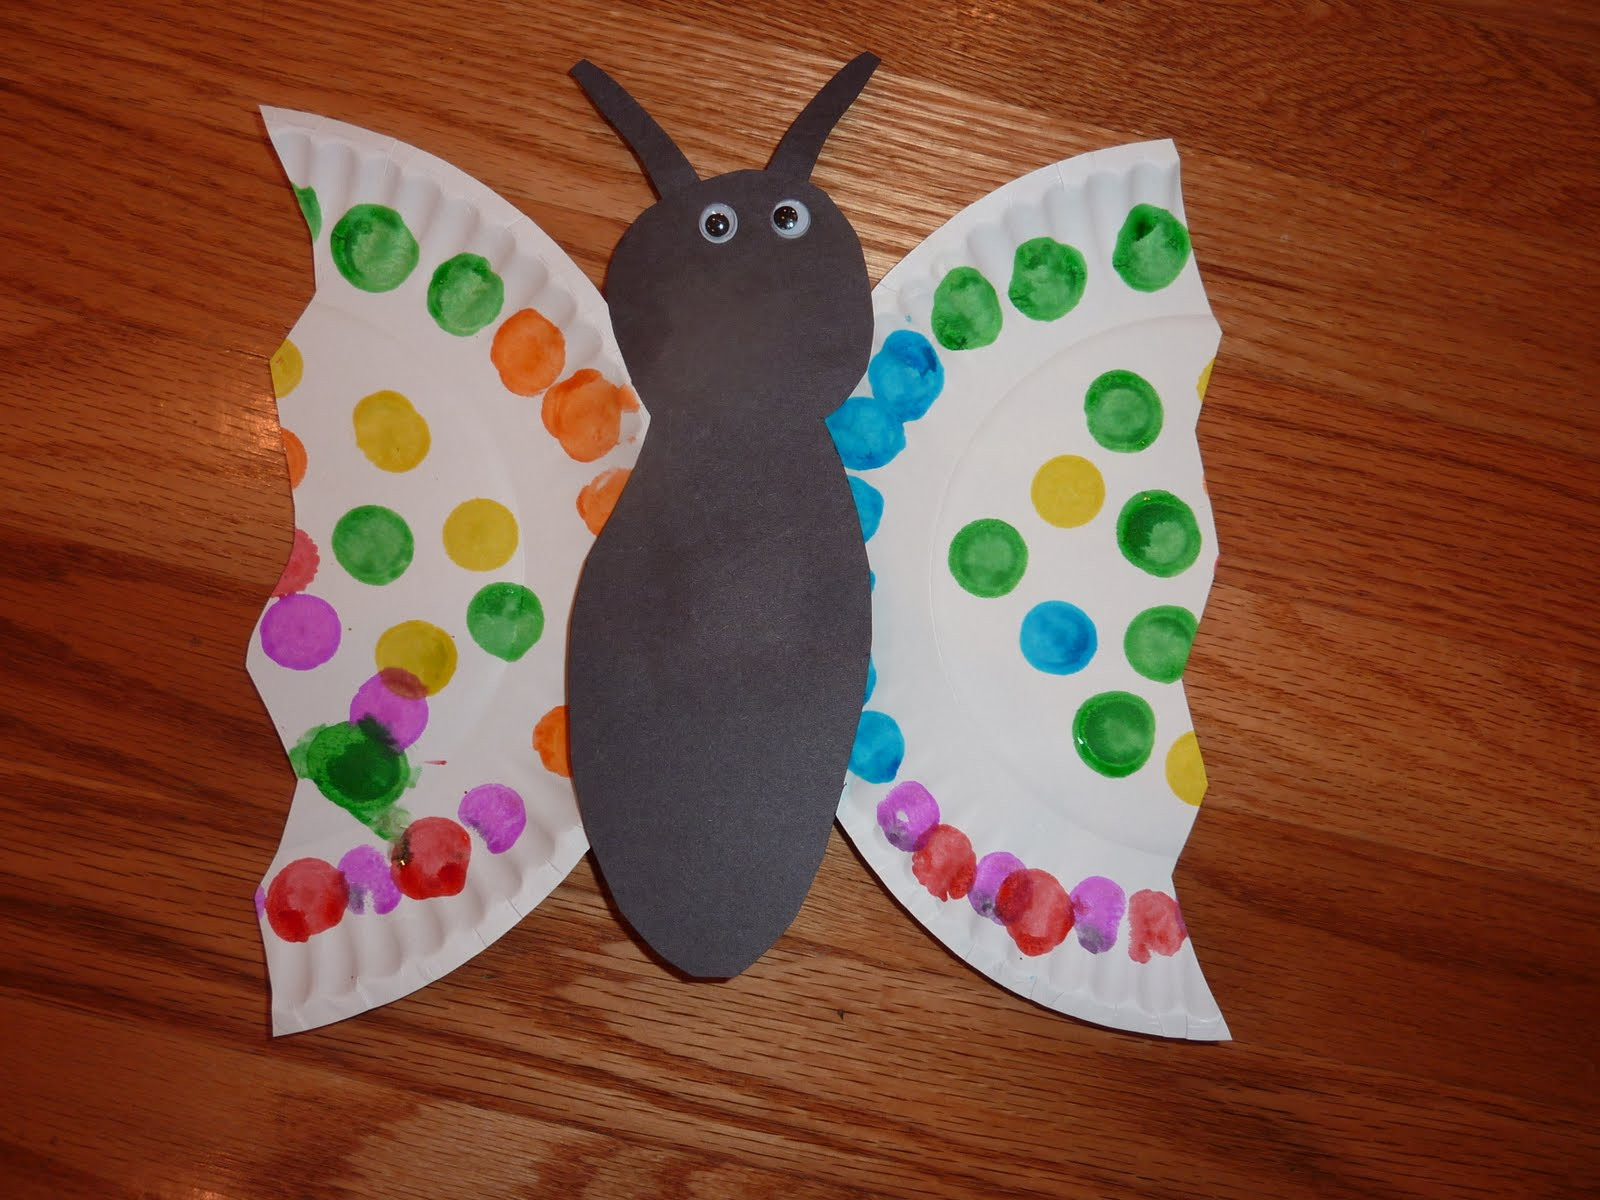 Pinterest crafts for kids ages 3 5 myideasbedroom com